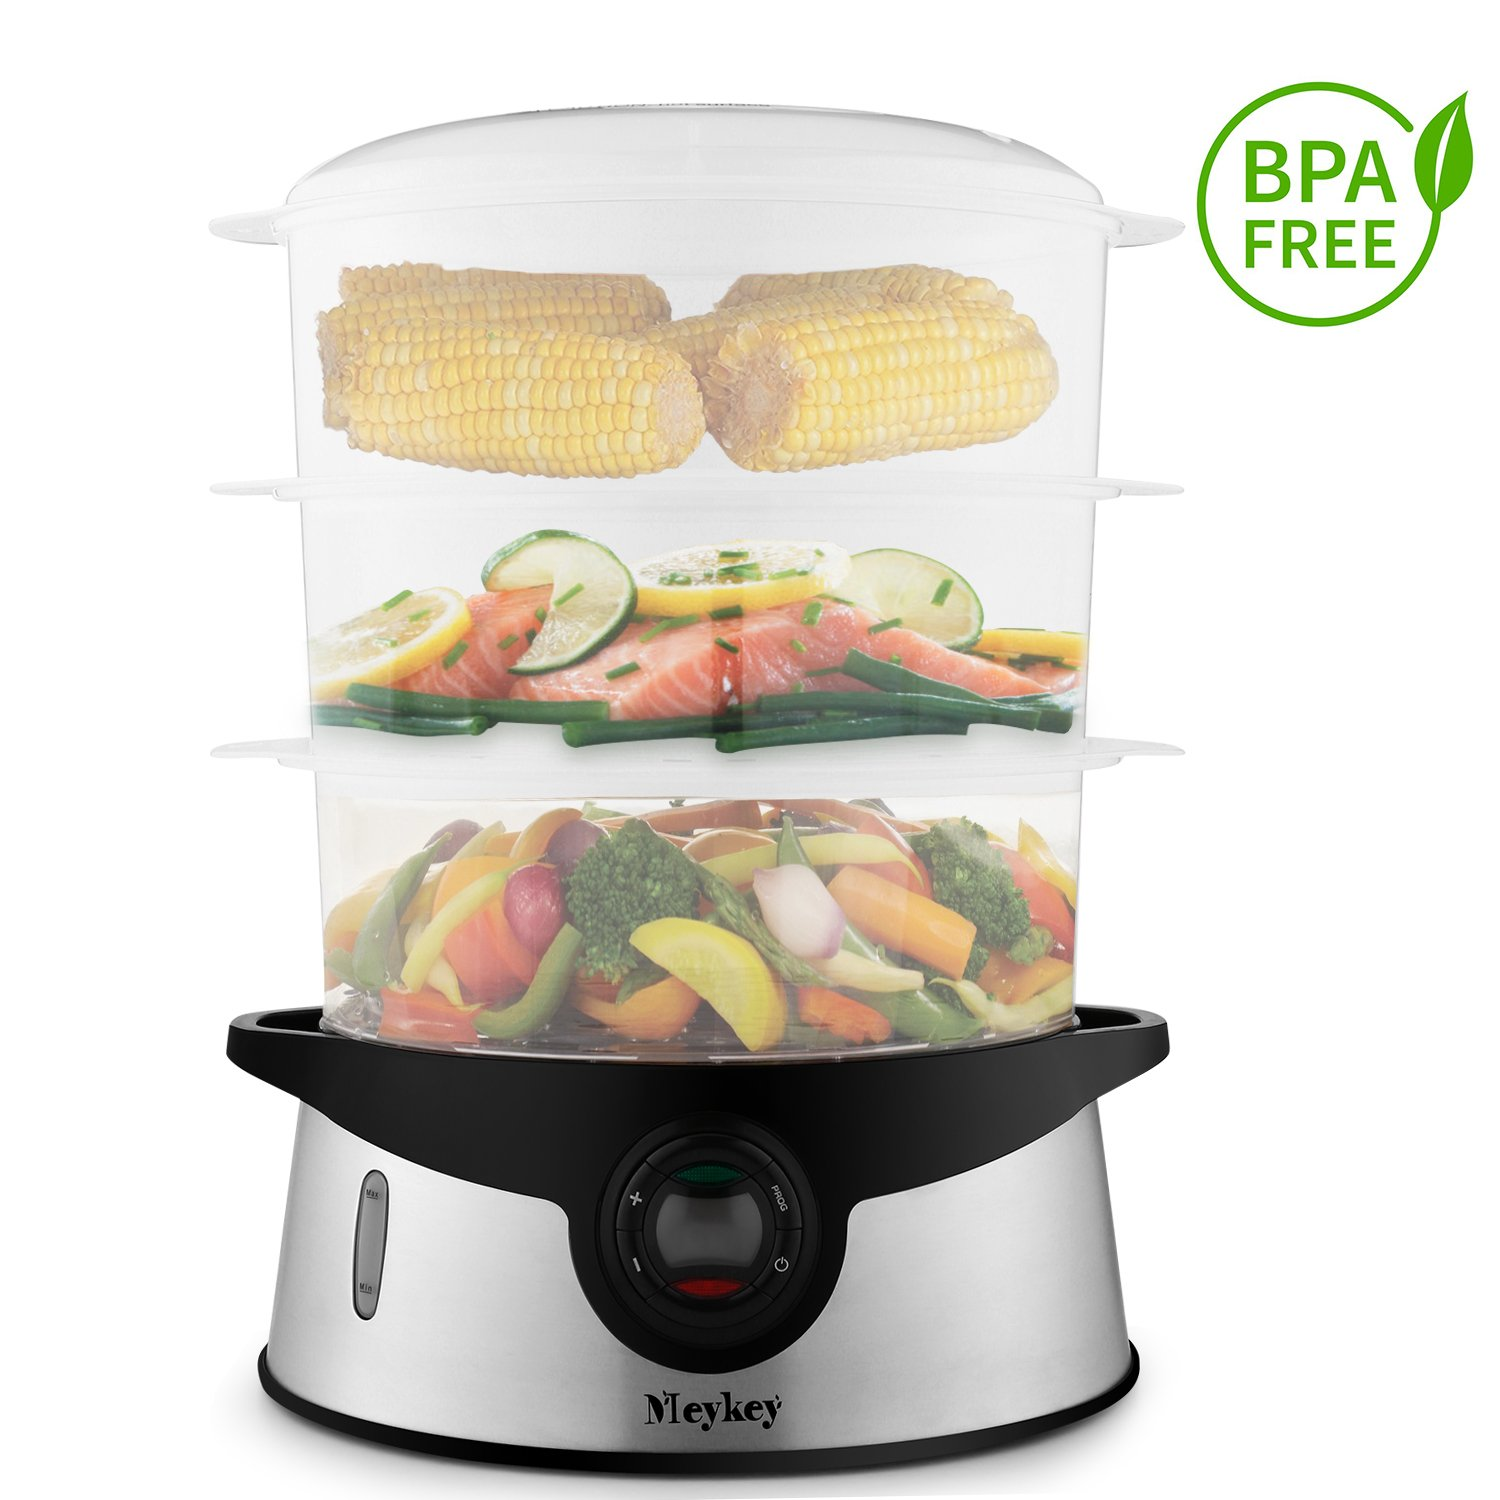 9.5 Quart Food Steamer BPA Free, 3 Tier Stackable Baskets Vegetable Steamer with Rice and Grains Tray, Electric Steamer 800W Fast Heat up Voluker